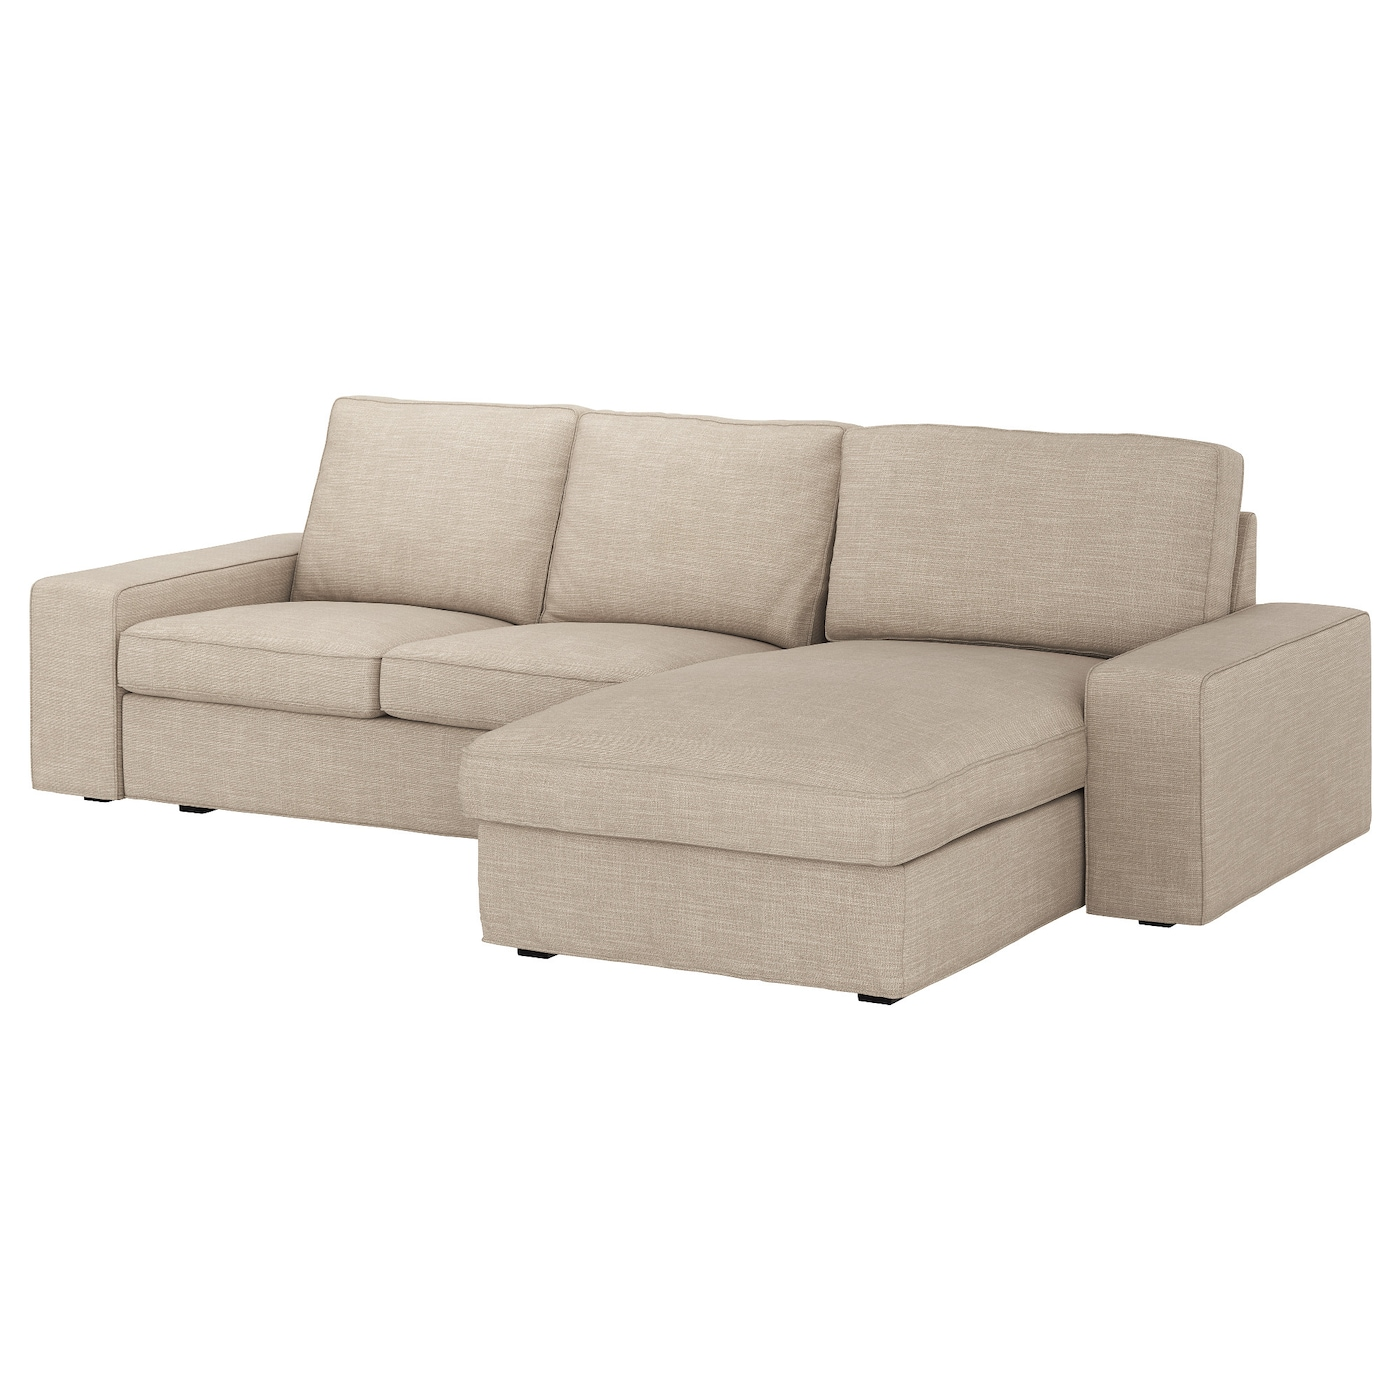 Kivik 3 seat sofa with chaise longue hillared beige ikea for Beige sectional with chaise